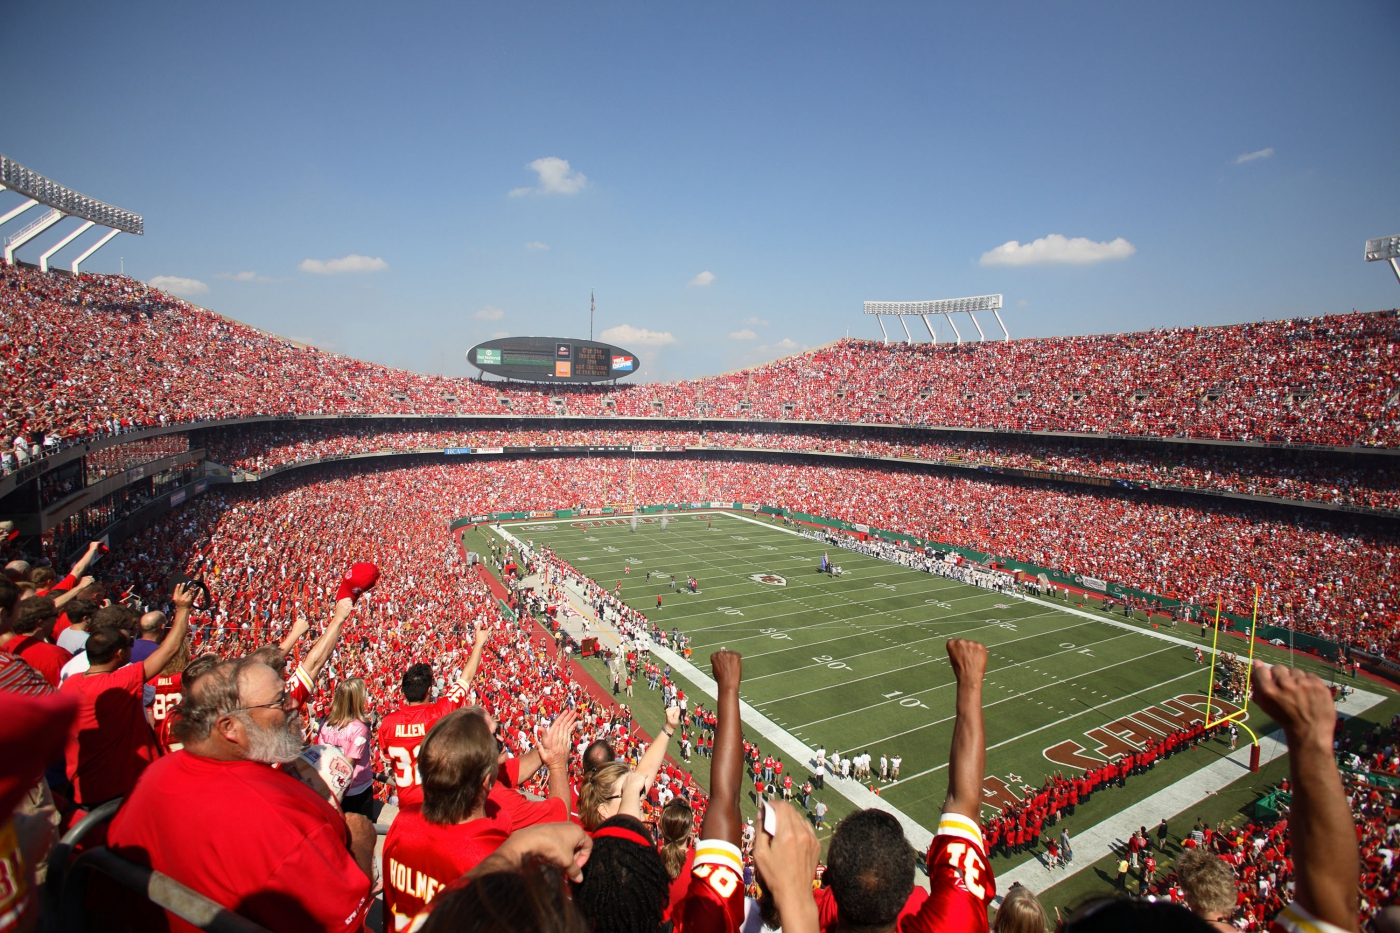 Get a taste for Show-Me State spirit at venues like Arrowhead Stadium, home of the NFL's Kansas City Chiefs.